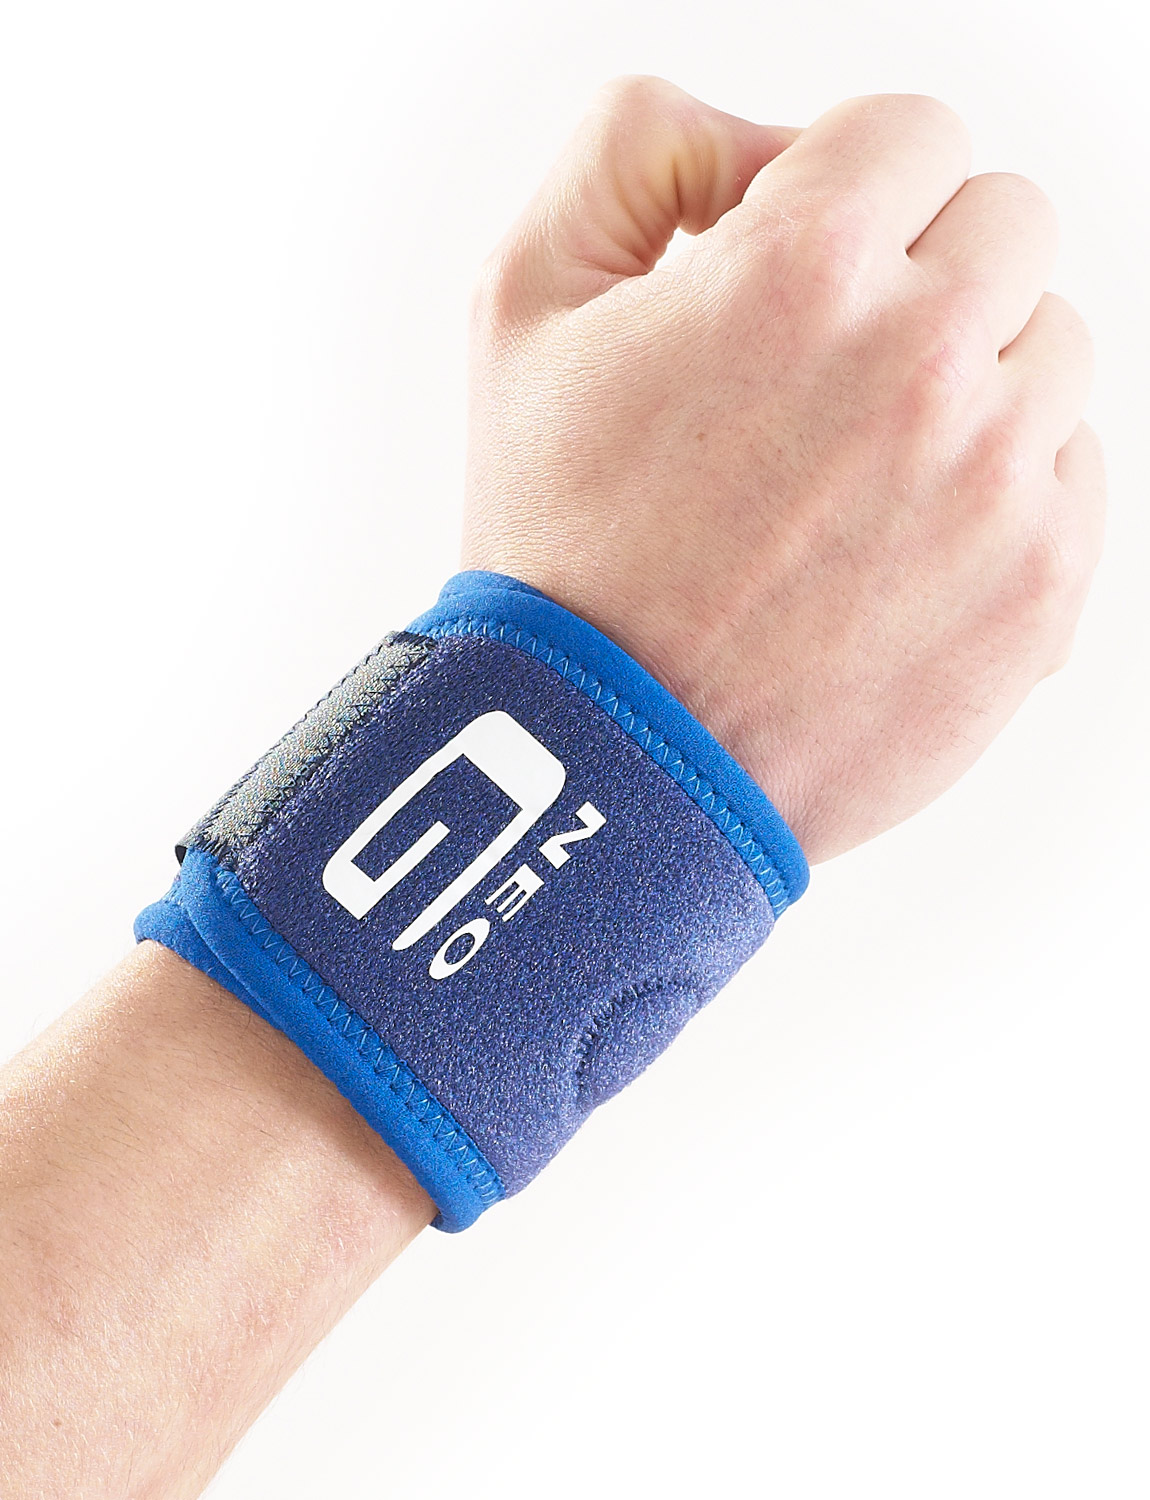 881- WRIST BAND  Made of durable, heat therapeutic neoprene this support can be used to help provide support to unstable wrists or help ease symptoms of arthritic wrists and hands.